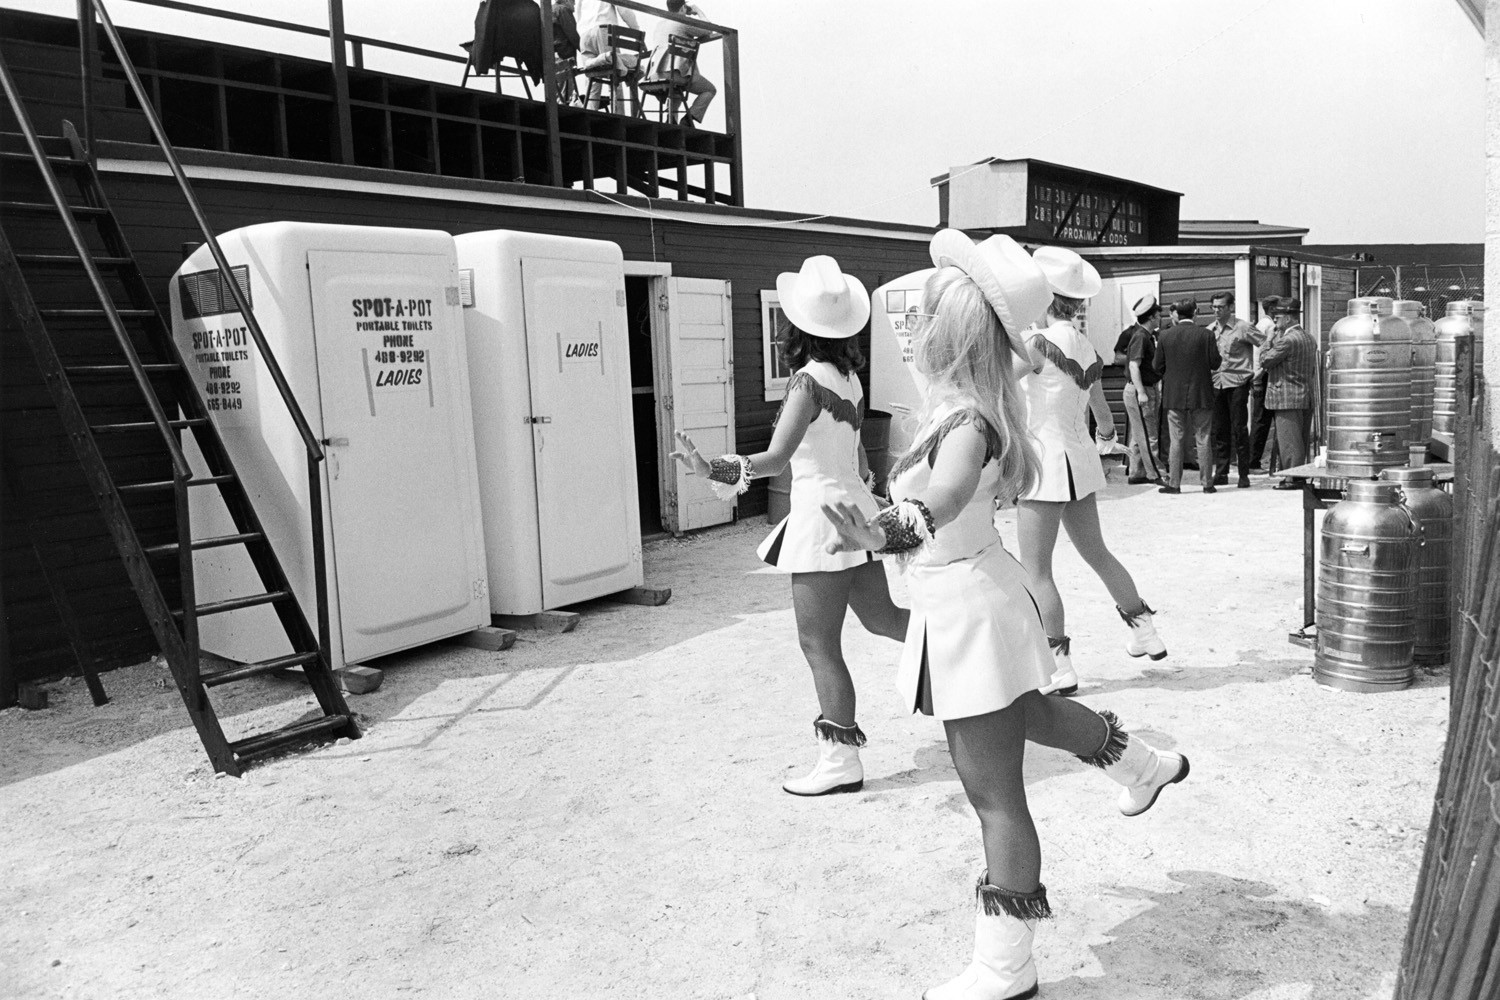 Tod Papageorge, Preakness Stakes, Pimlico Racetrack, Baltimore, May 16, 1970